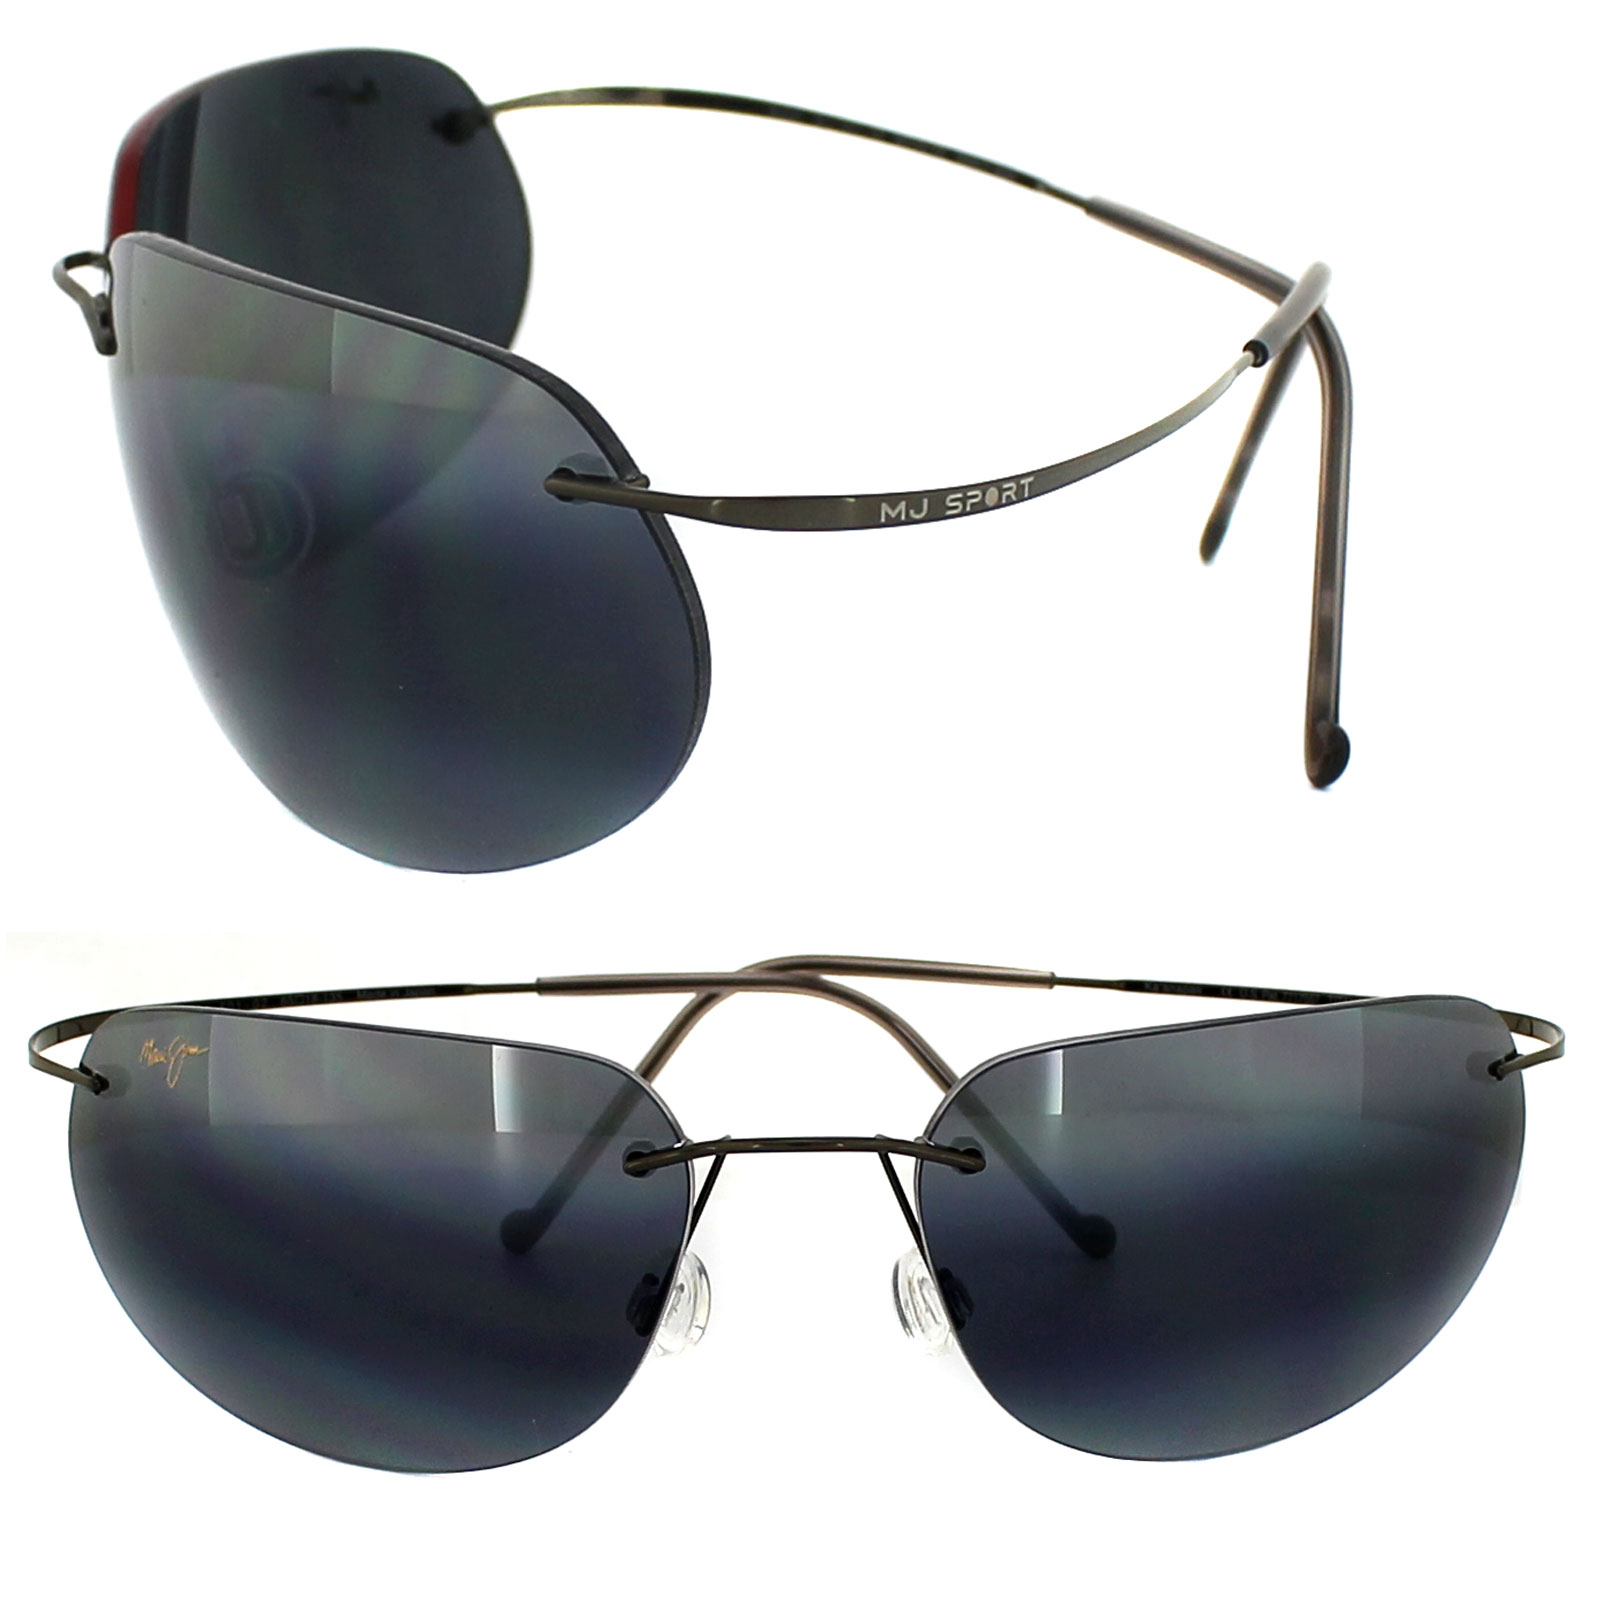 Buy Any Sunglasses and Add Your Prescription for Only $75 Choose any frame (excluding Oakley, Maui Jim, and Cartier) and add your choice of lenses: Totallens single vision for $75, FeatherWates Polarized single vision for $